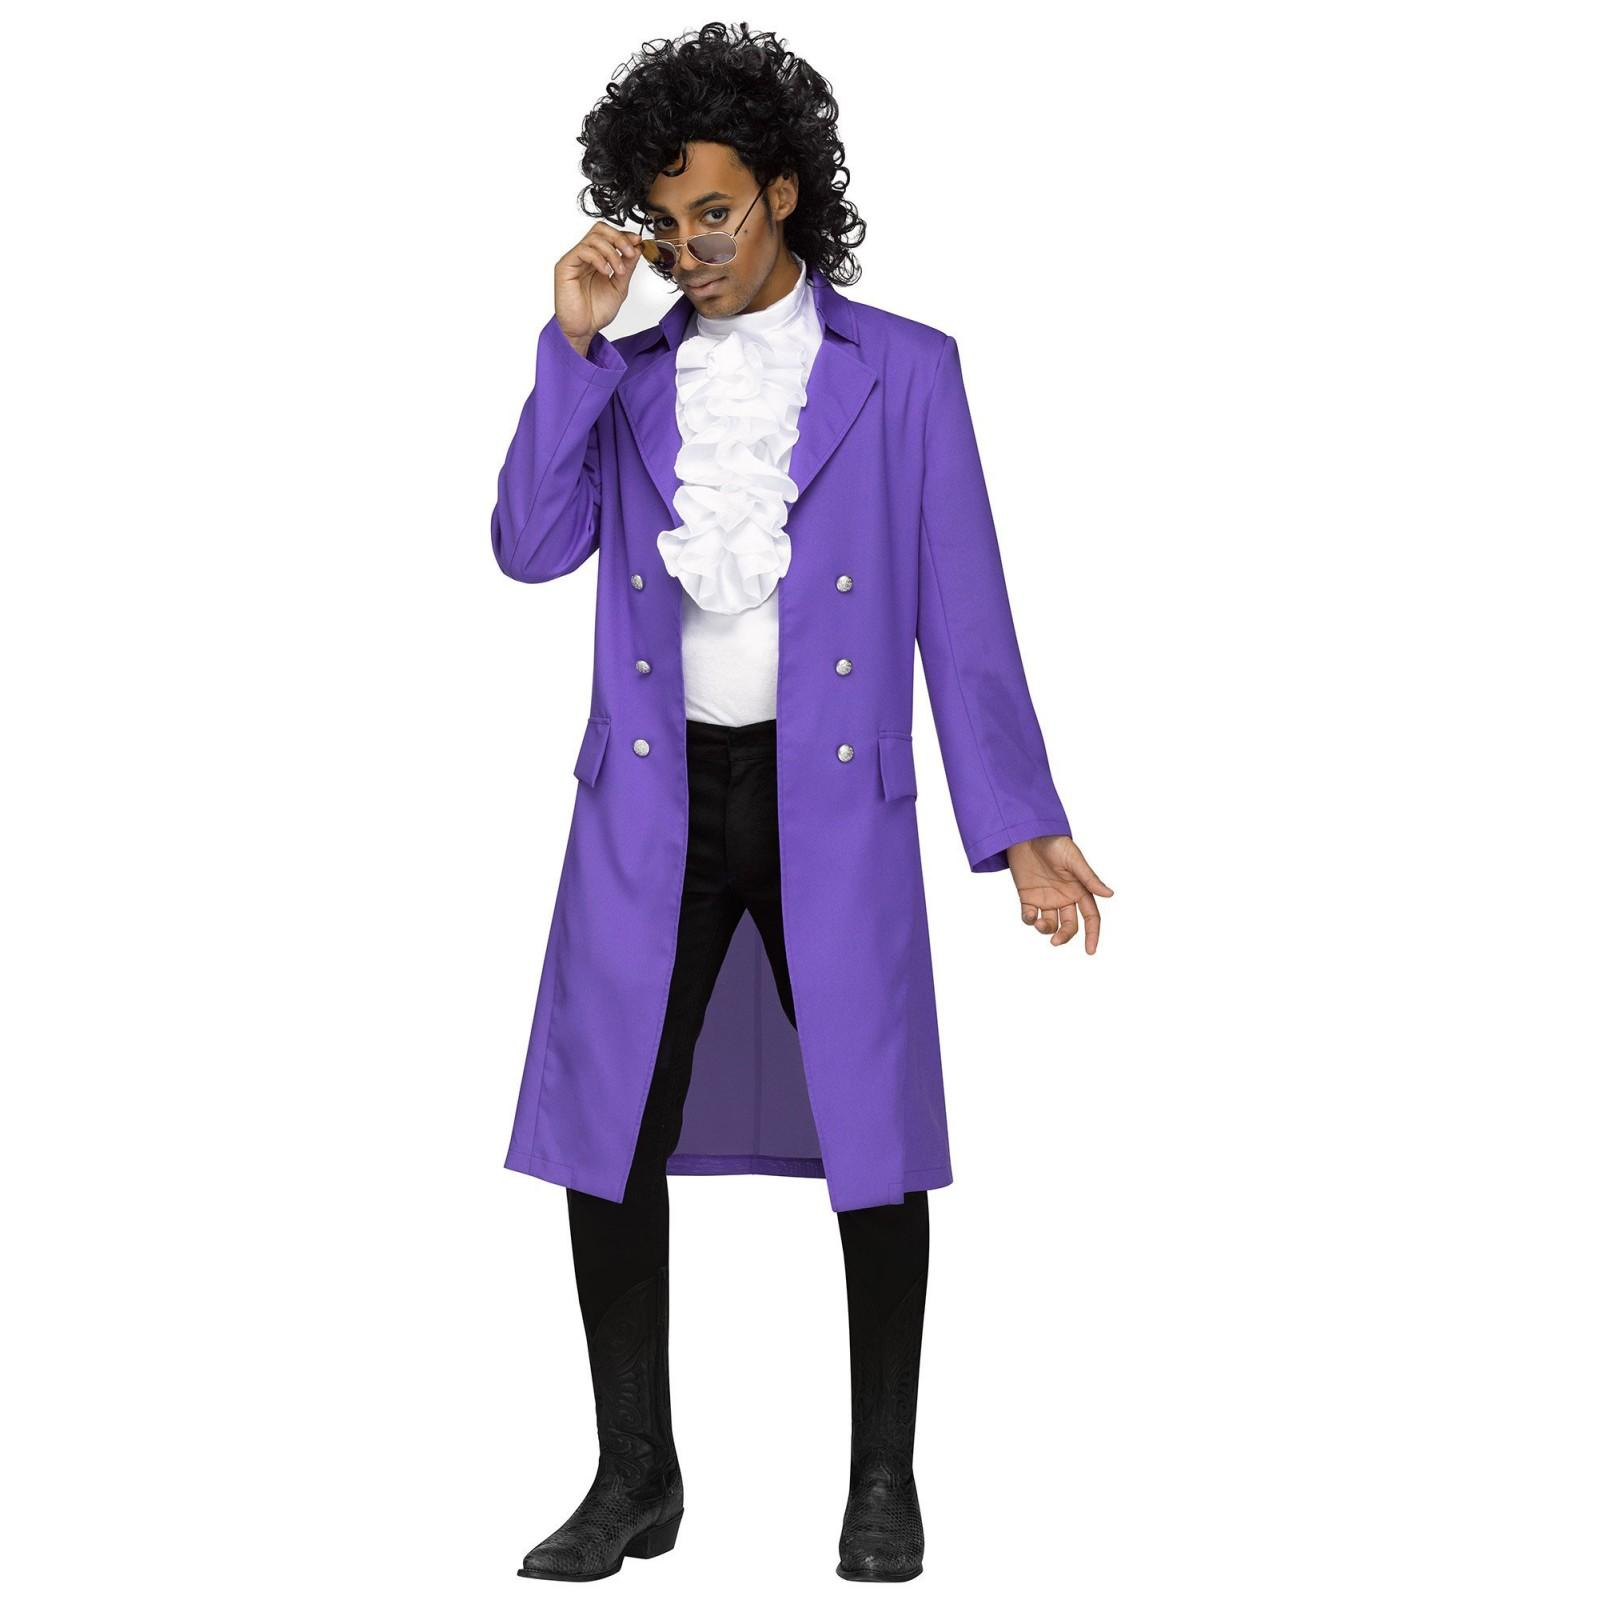 pop star men's adult halloween costume - walmart